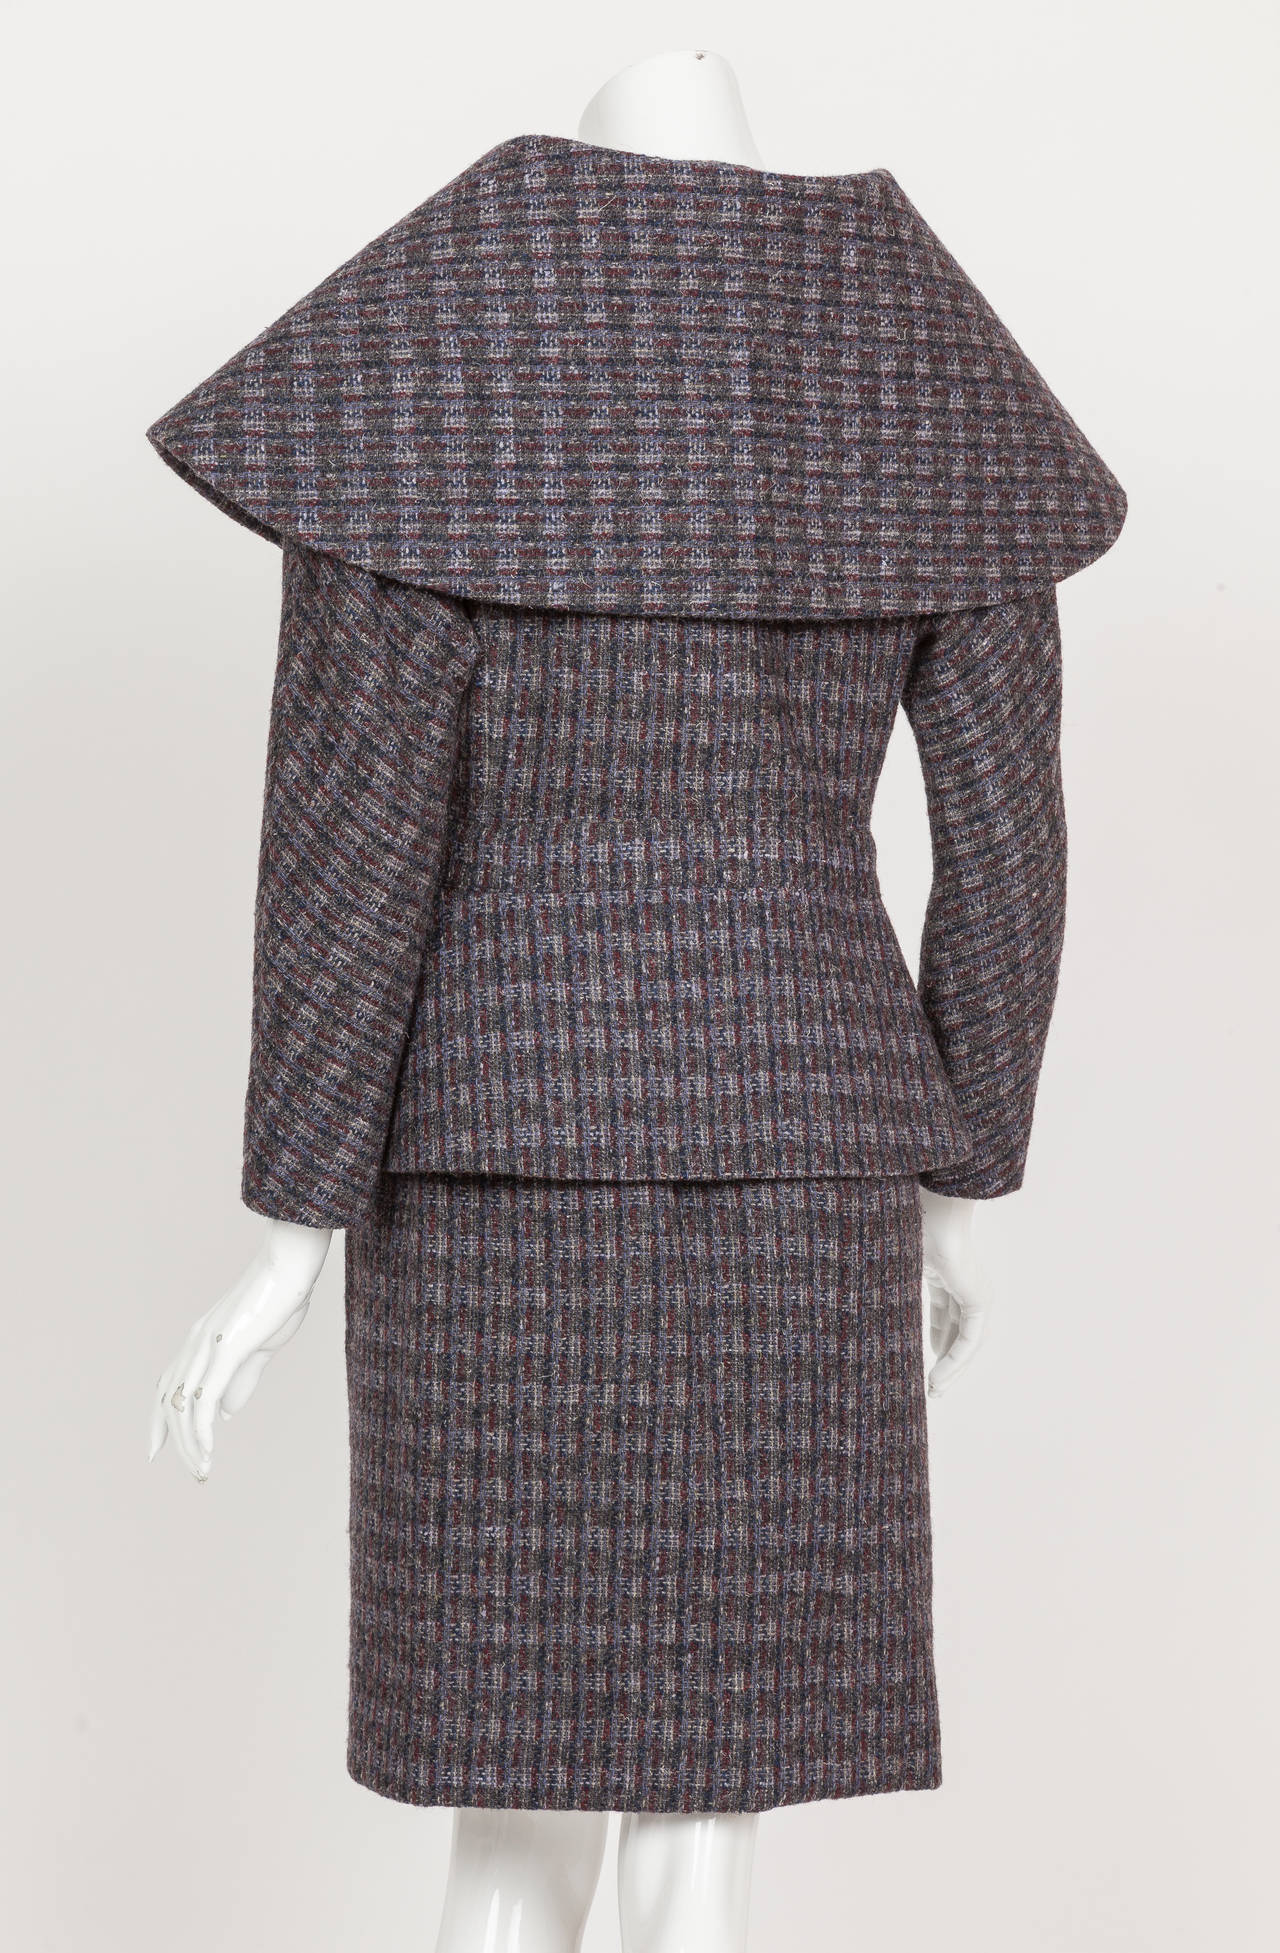 Pierre Cardin Tweed Jacket and Skirt Ensemble Suit w/Detachable collar ca. 1982 7